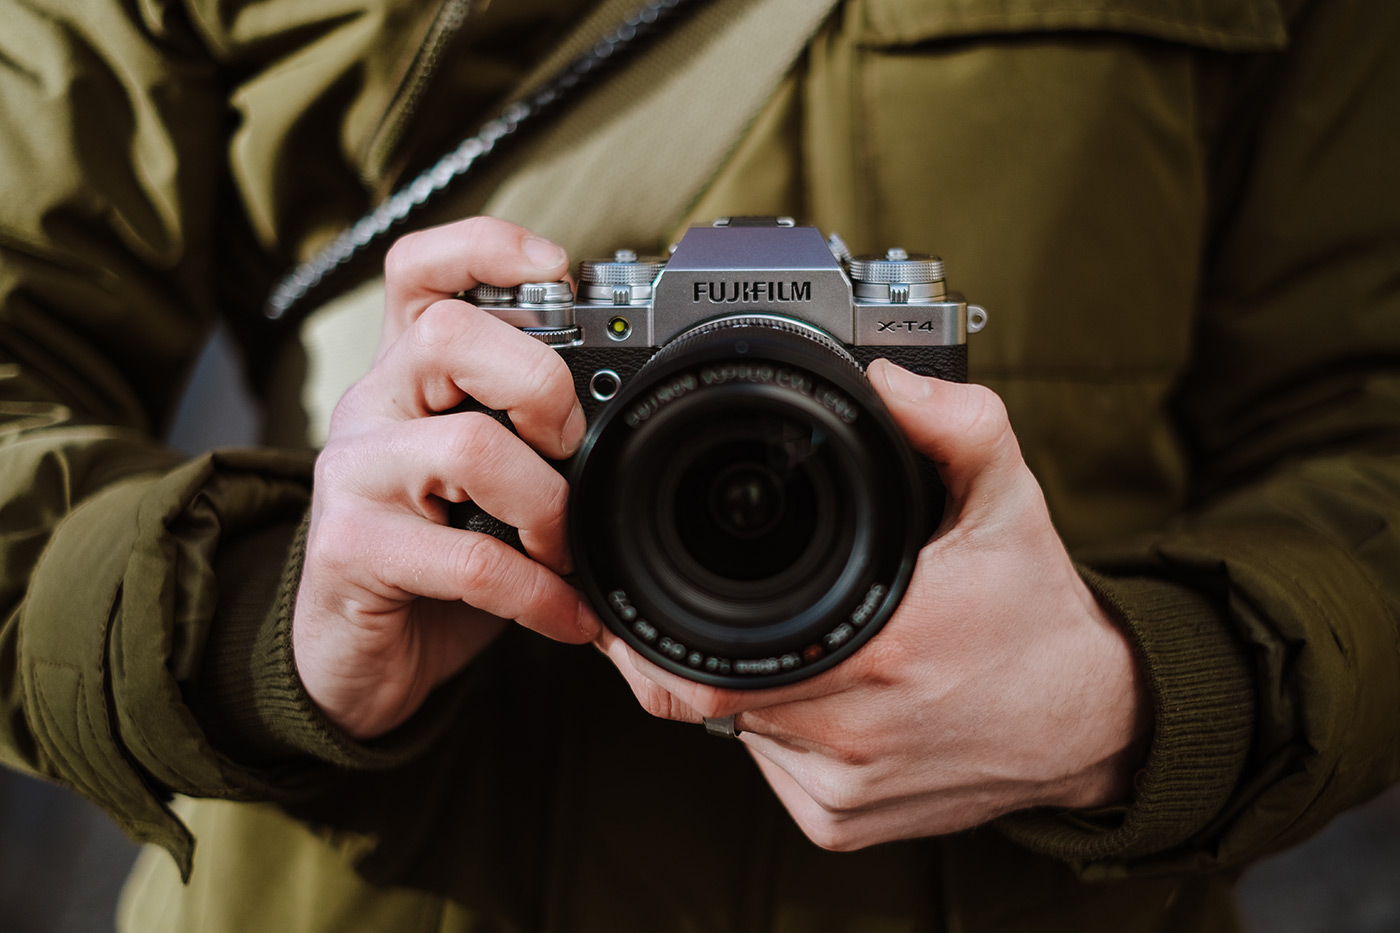 New Flagship Fujifilm X-T4 Mirrorless Camera Details